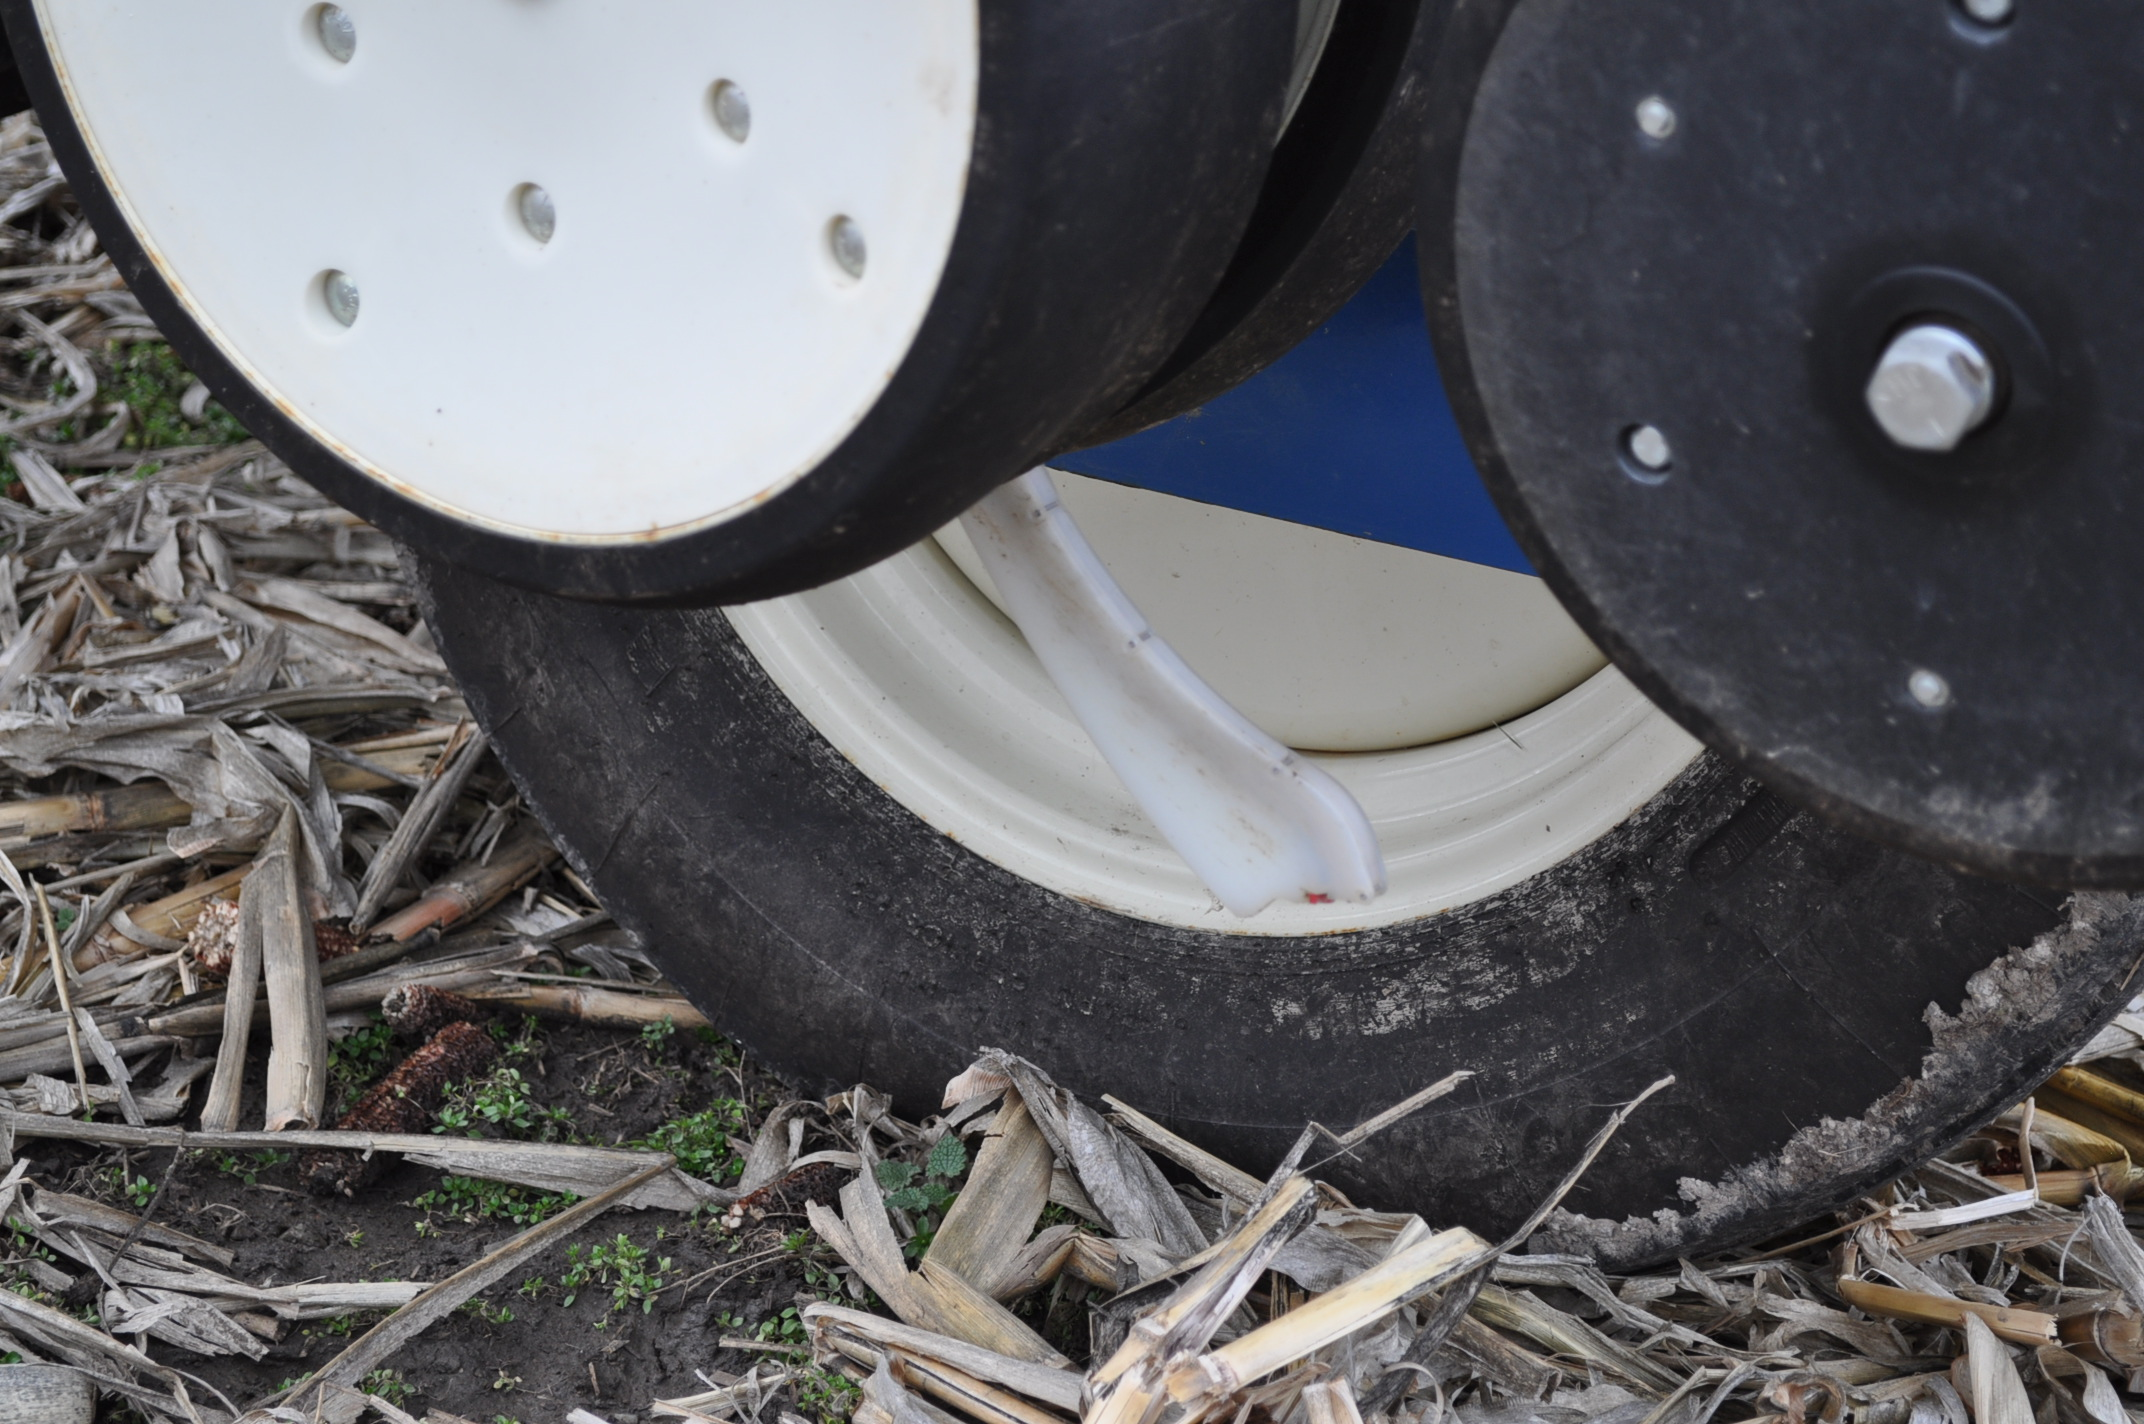 Kinze 3000 planter 4/7 planter, boxes, no-till, pull-type, ground drive, markers, rubber closing - Image 11 of 14